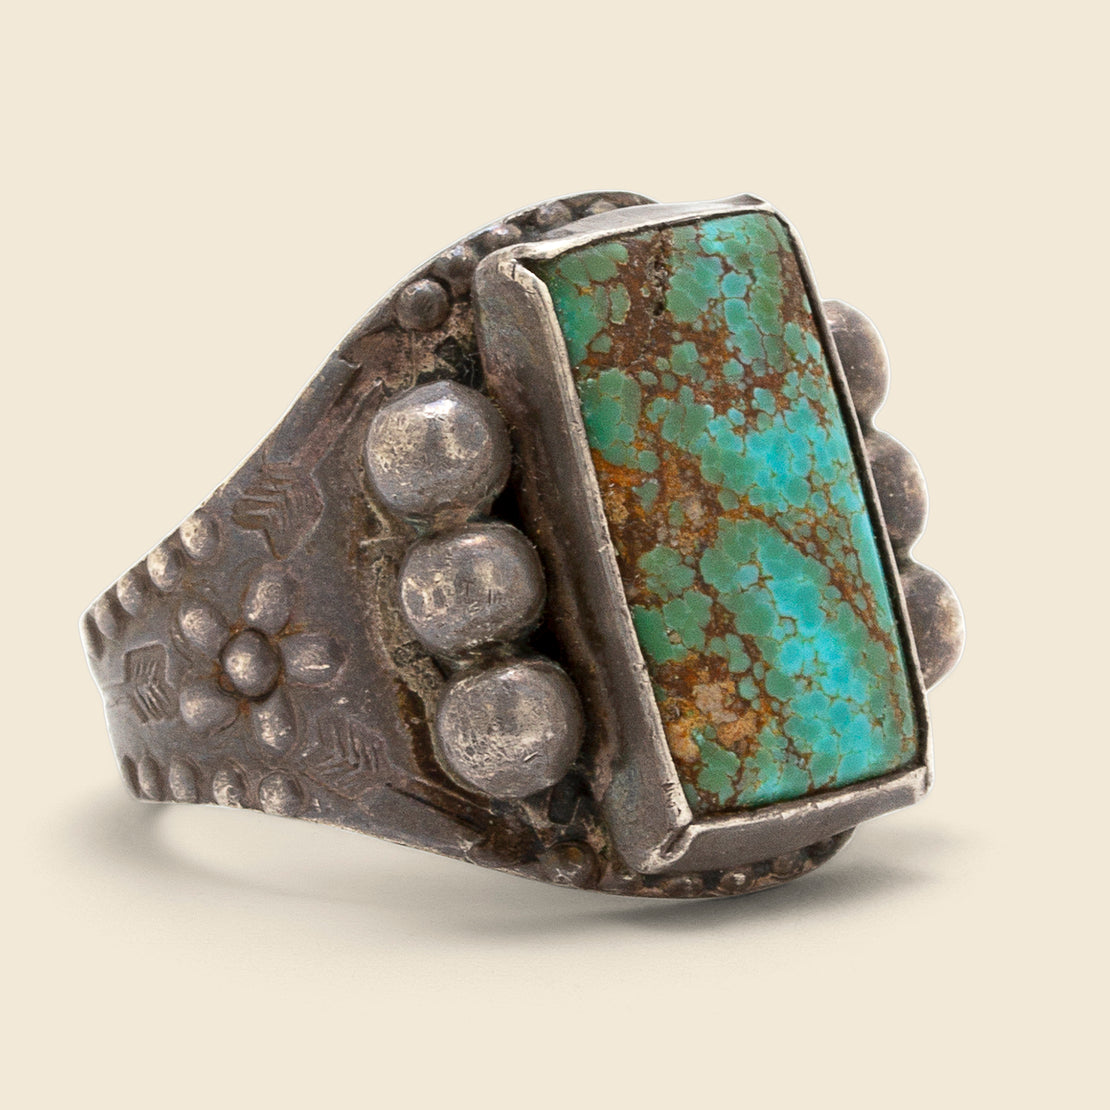 Vintage Flowers & Studs Turquoise Ring - Sterling/Turquoise